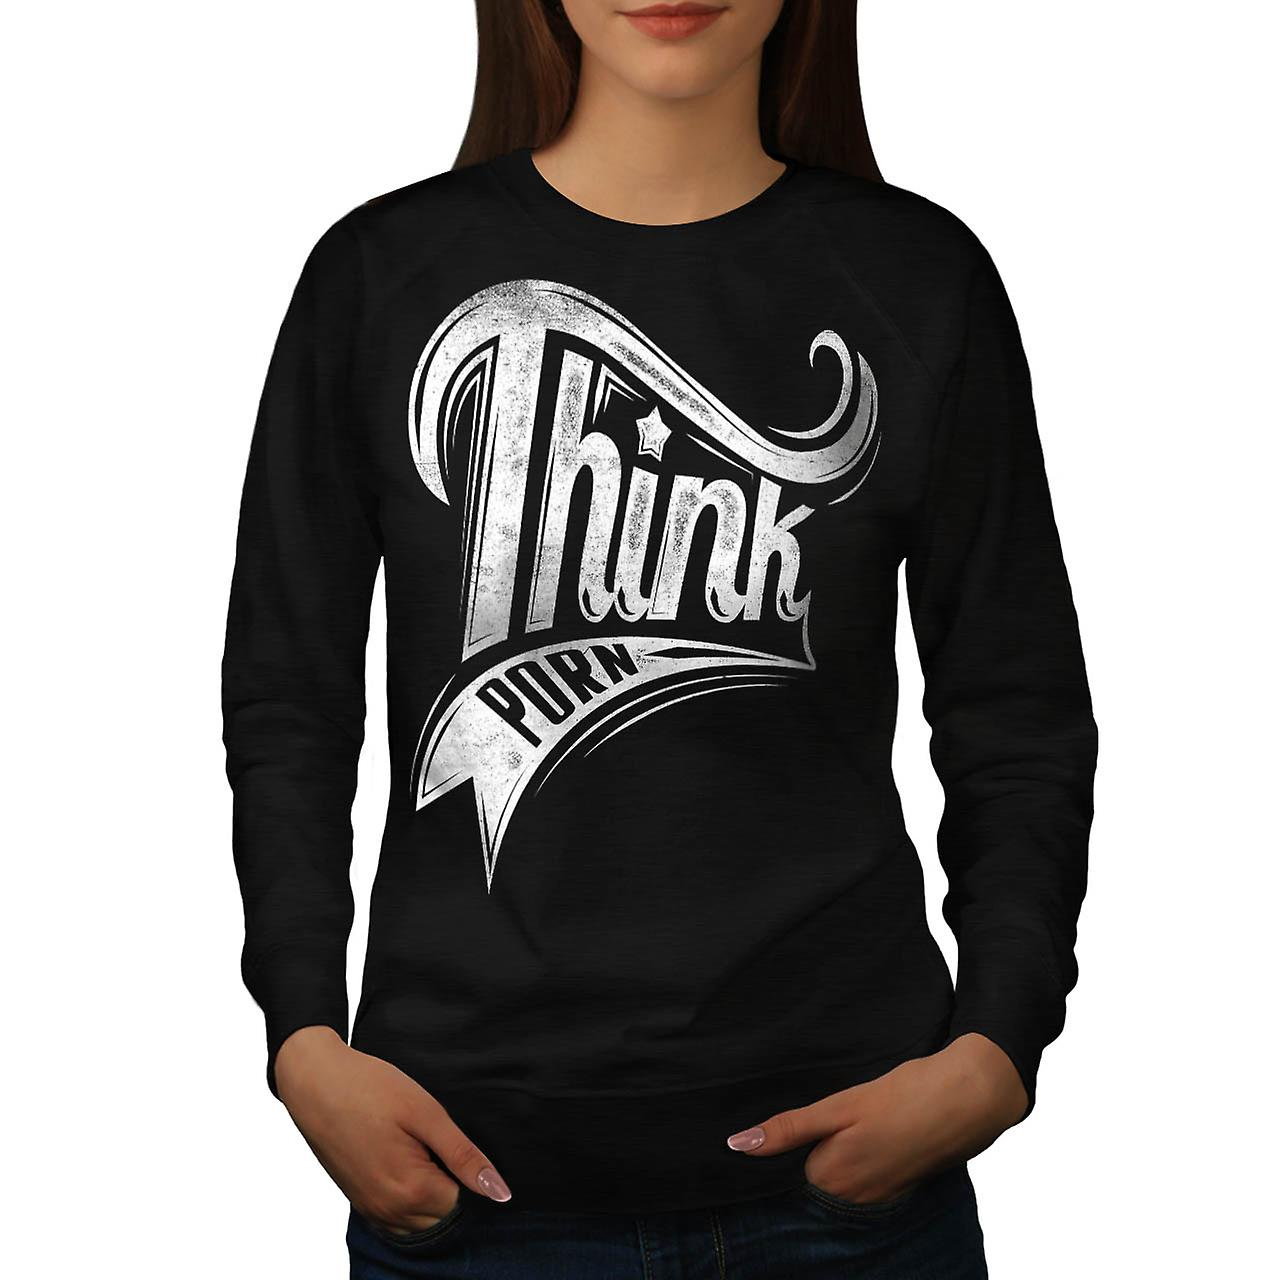 Think Porn Private Pornography Women Black Sweatshirt | Wellcoda